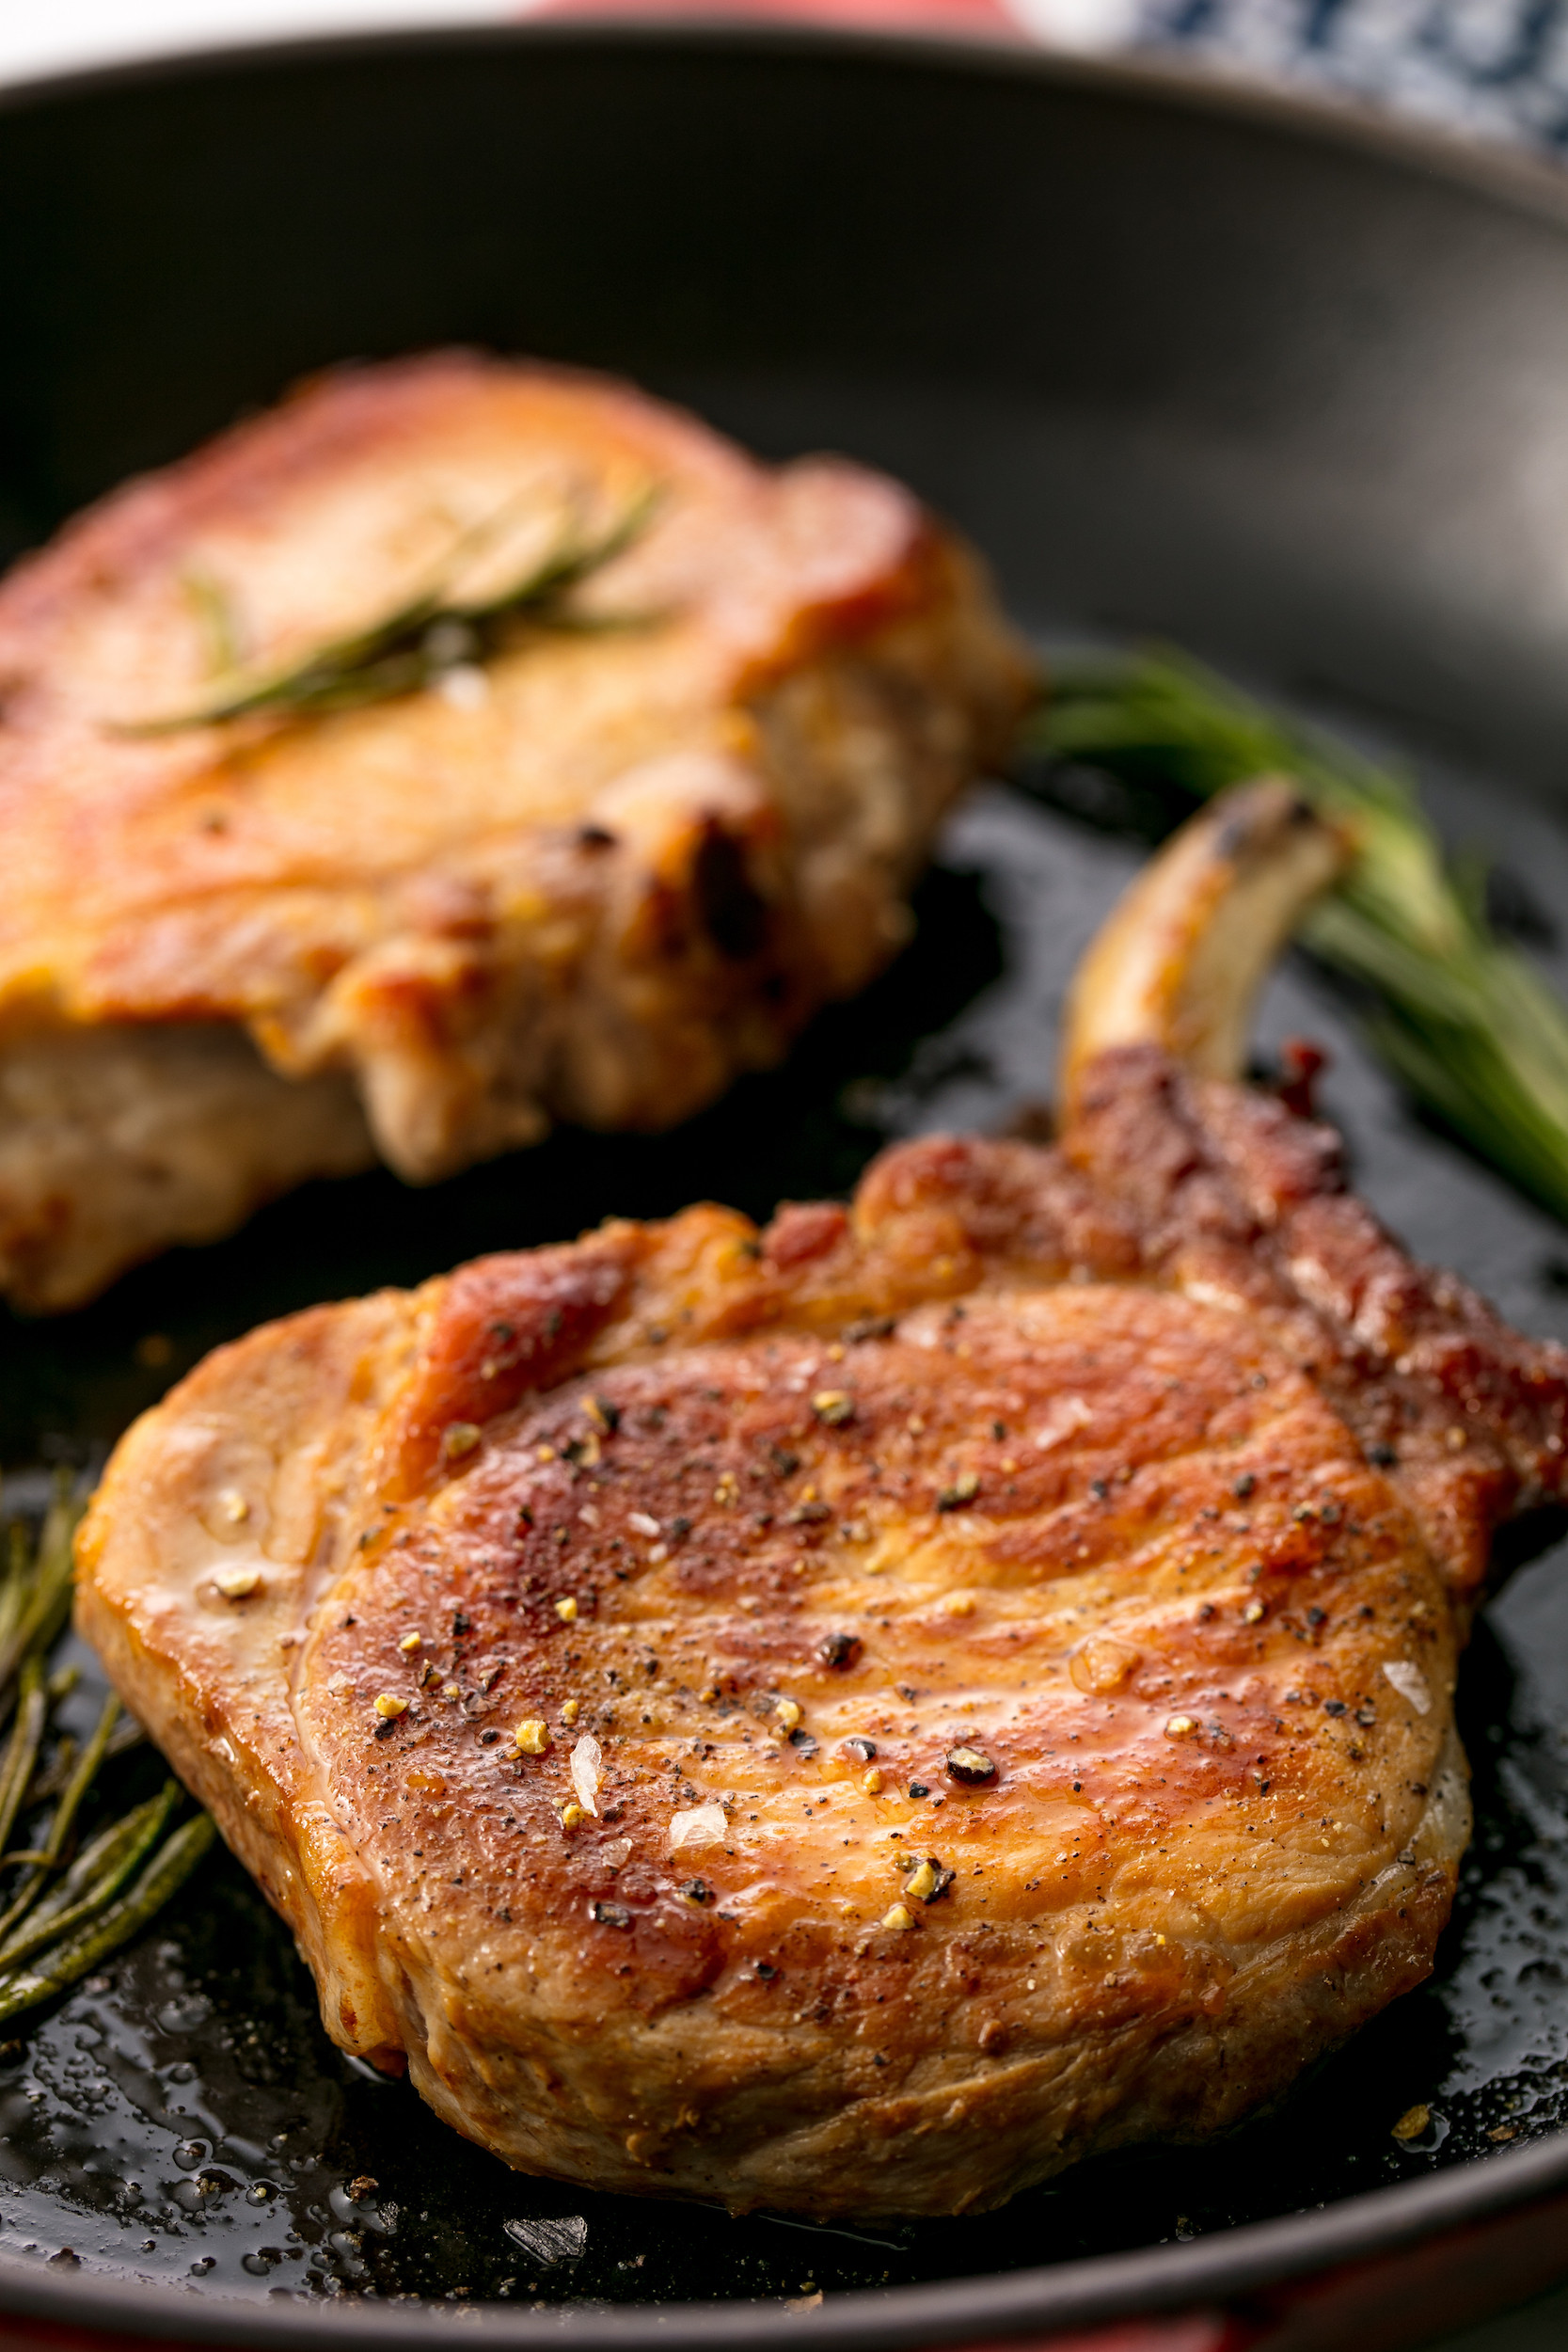 Best Pork Chops Recipe  20 Best Pork Chop Recipes How To Cook Pork Chops—Delish